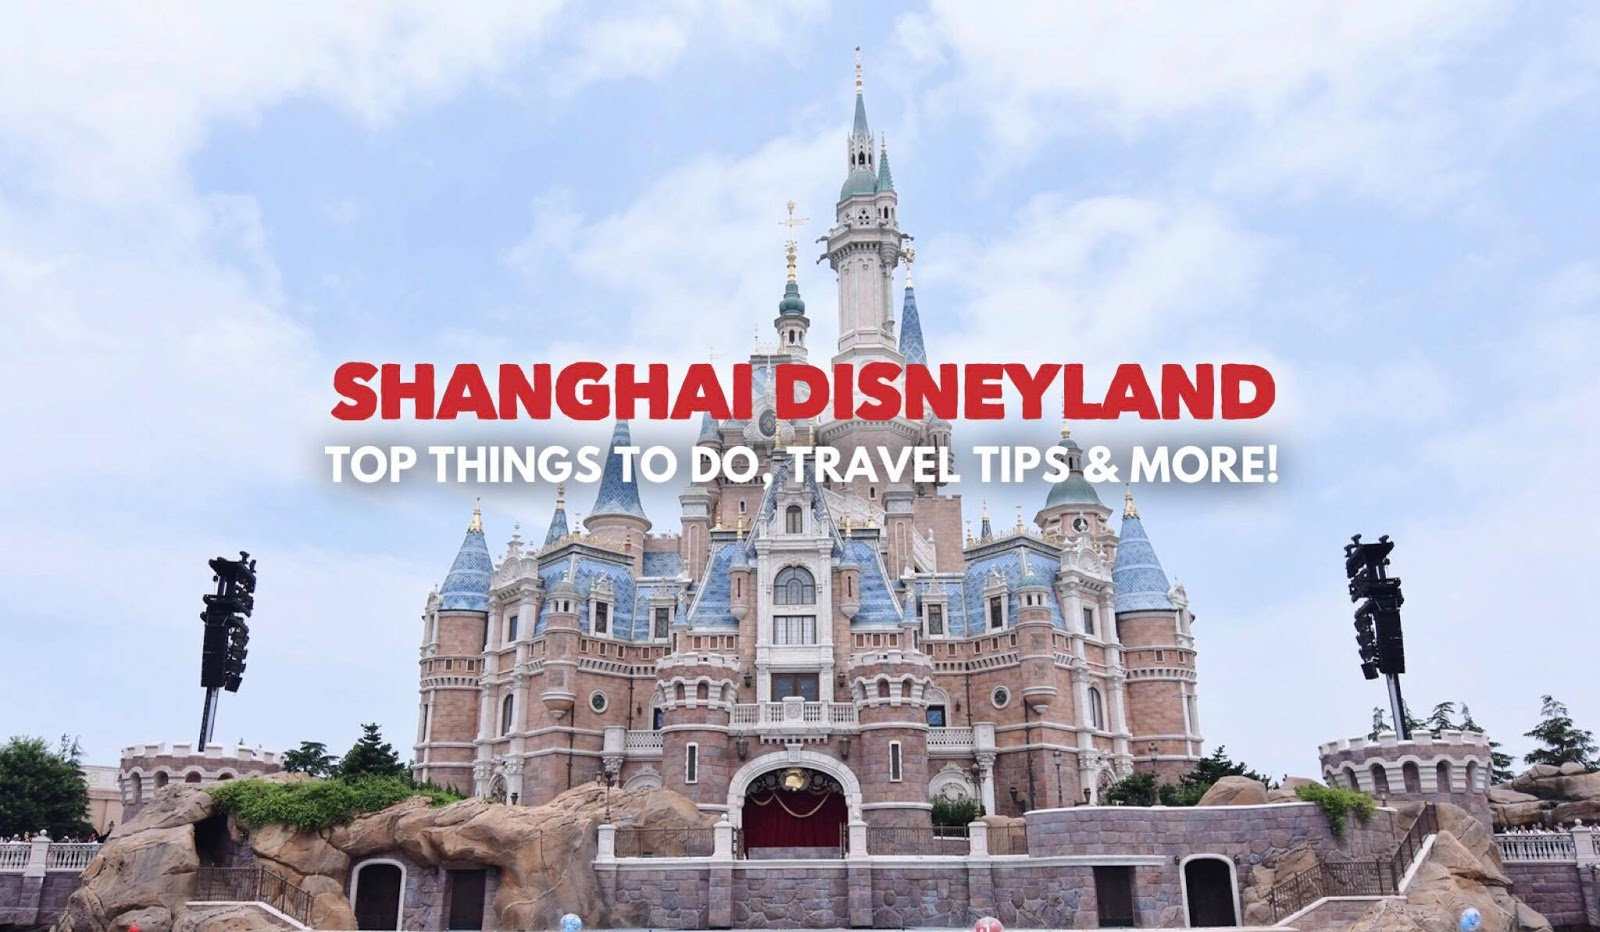 Top Things To Do At Shanghai Disneyland In China Travel